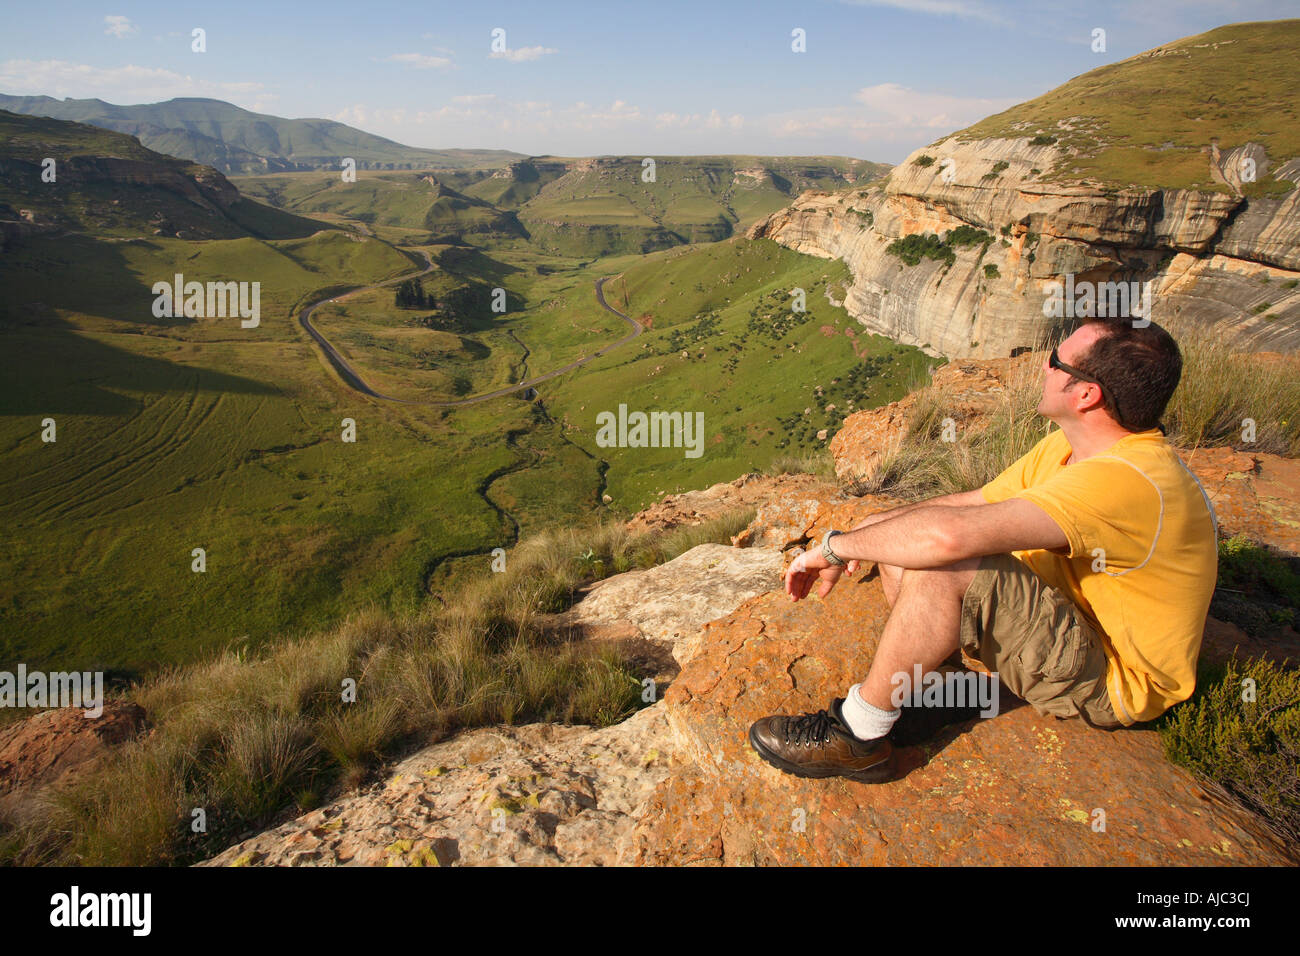 Man Sitting on a Rock Looking out on the Valley Bellow Stock Photo